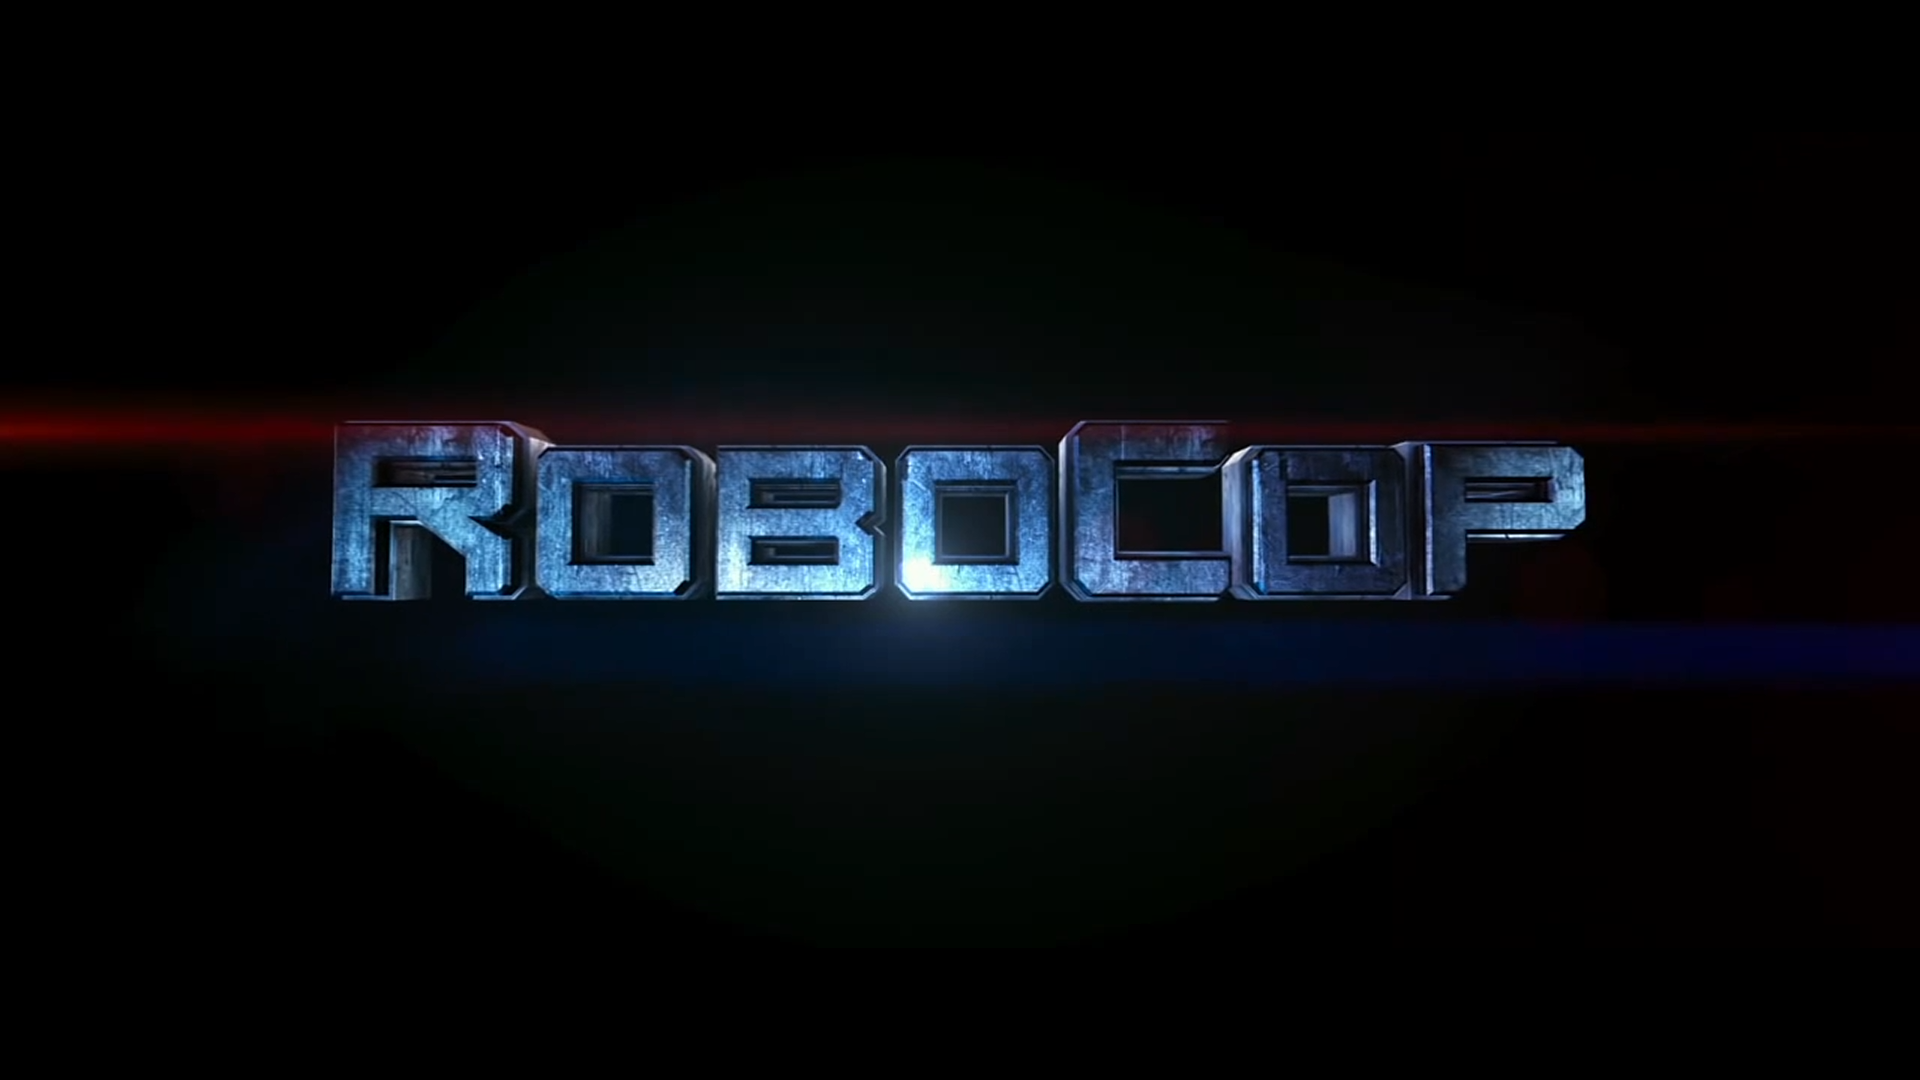 Robocop Sci Fi Movie Logo F Wallpaper 1920x1080 169800